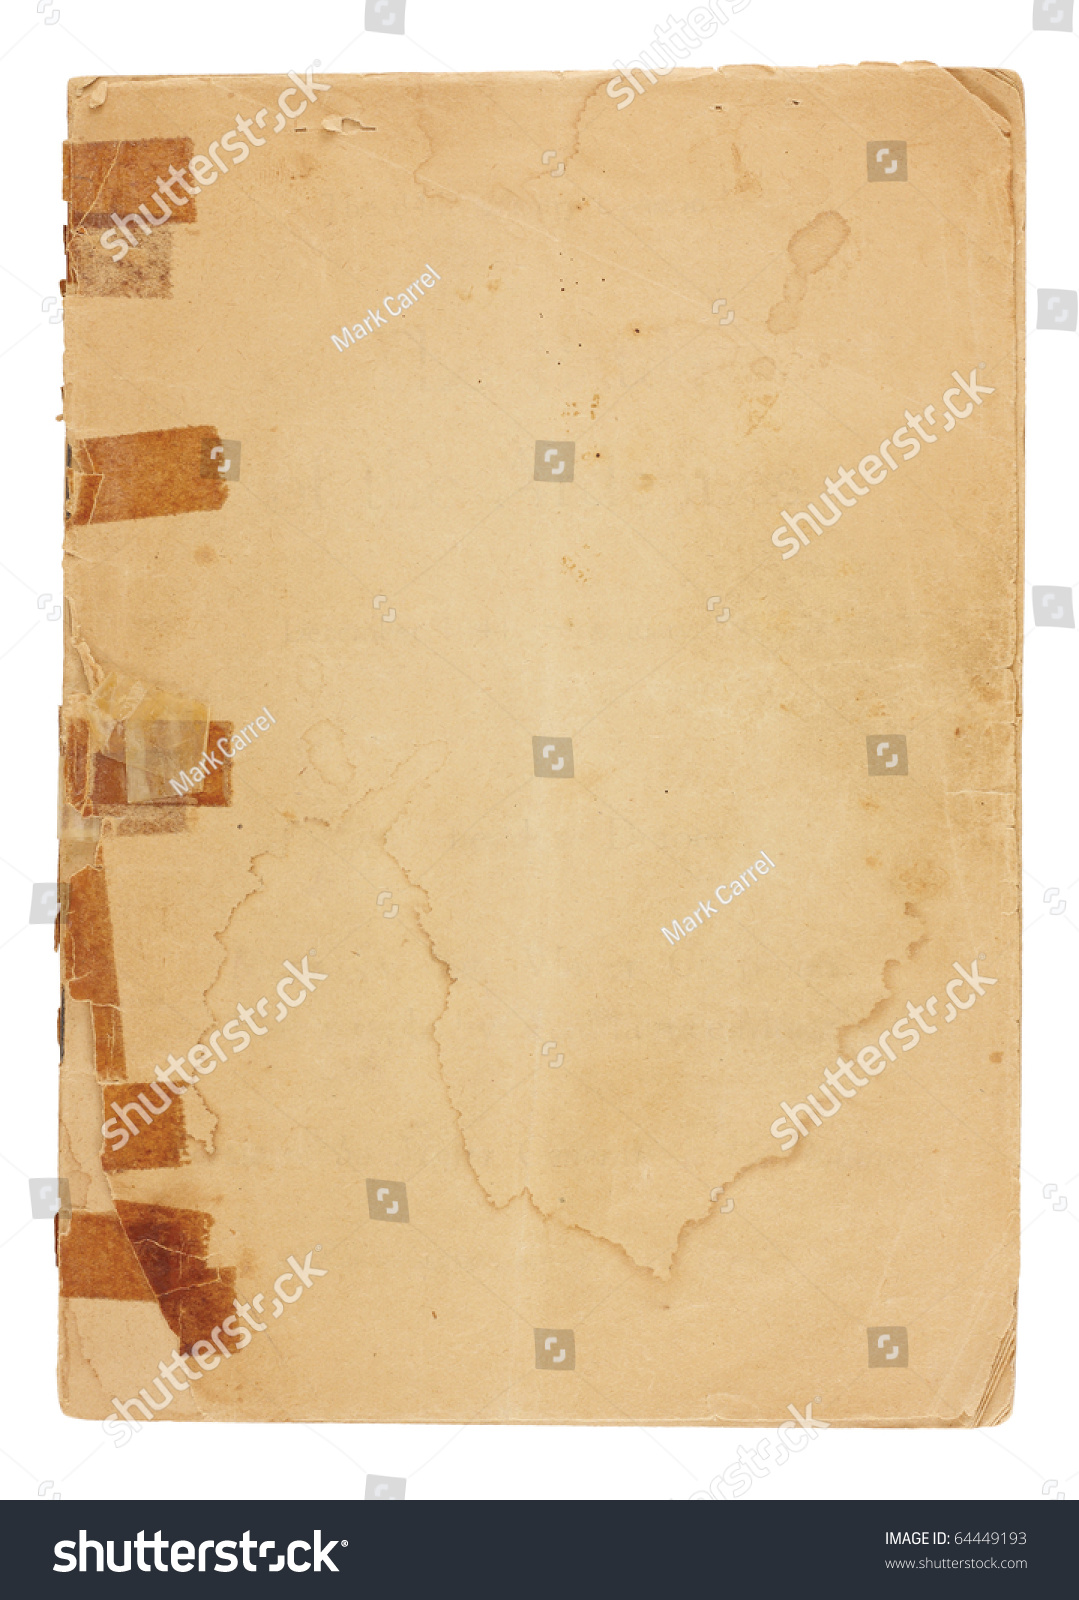 old pamphlet very old yellowed tape stock photo  old pamphlet very old yellowed tape on broken binding cover page is water